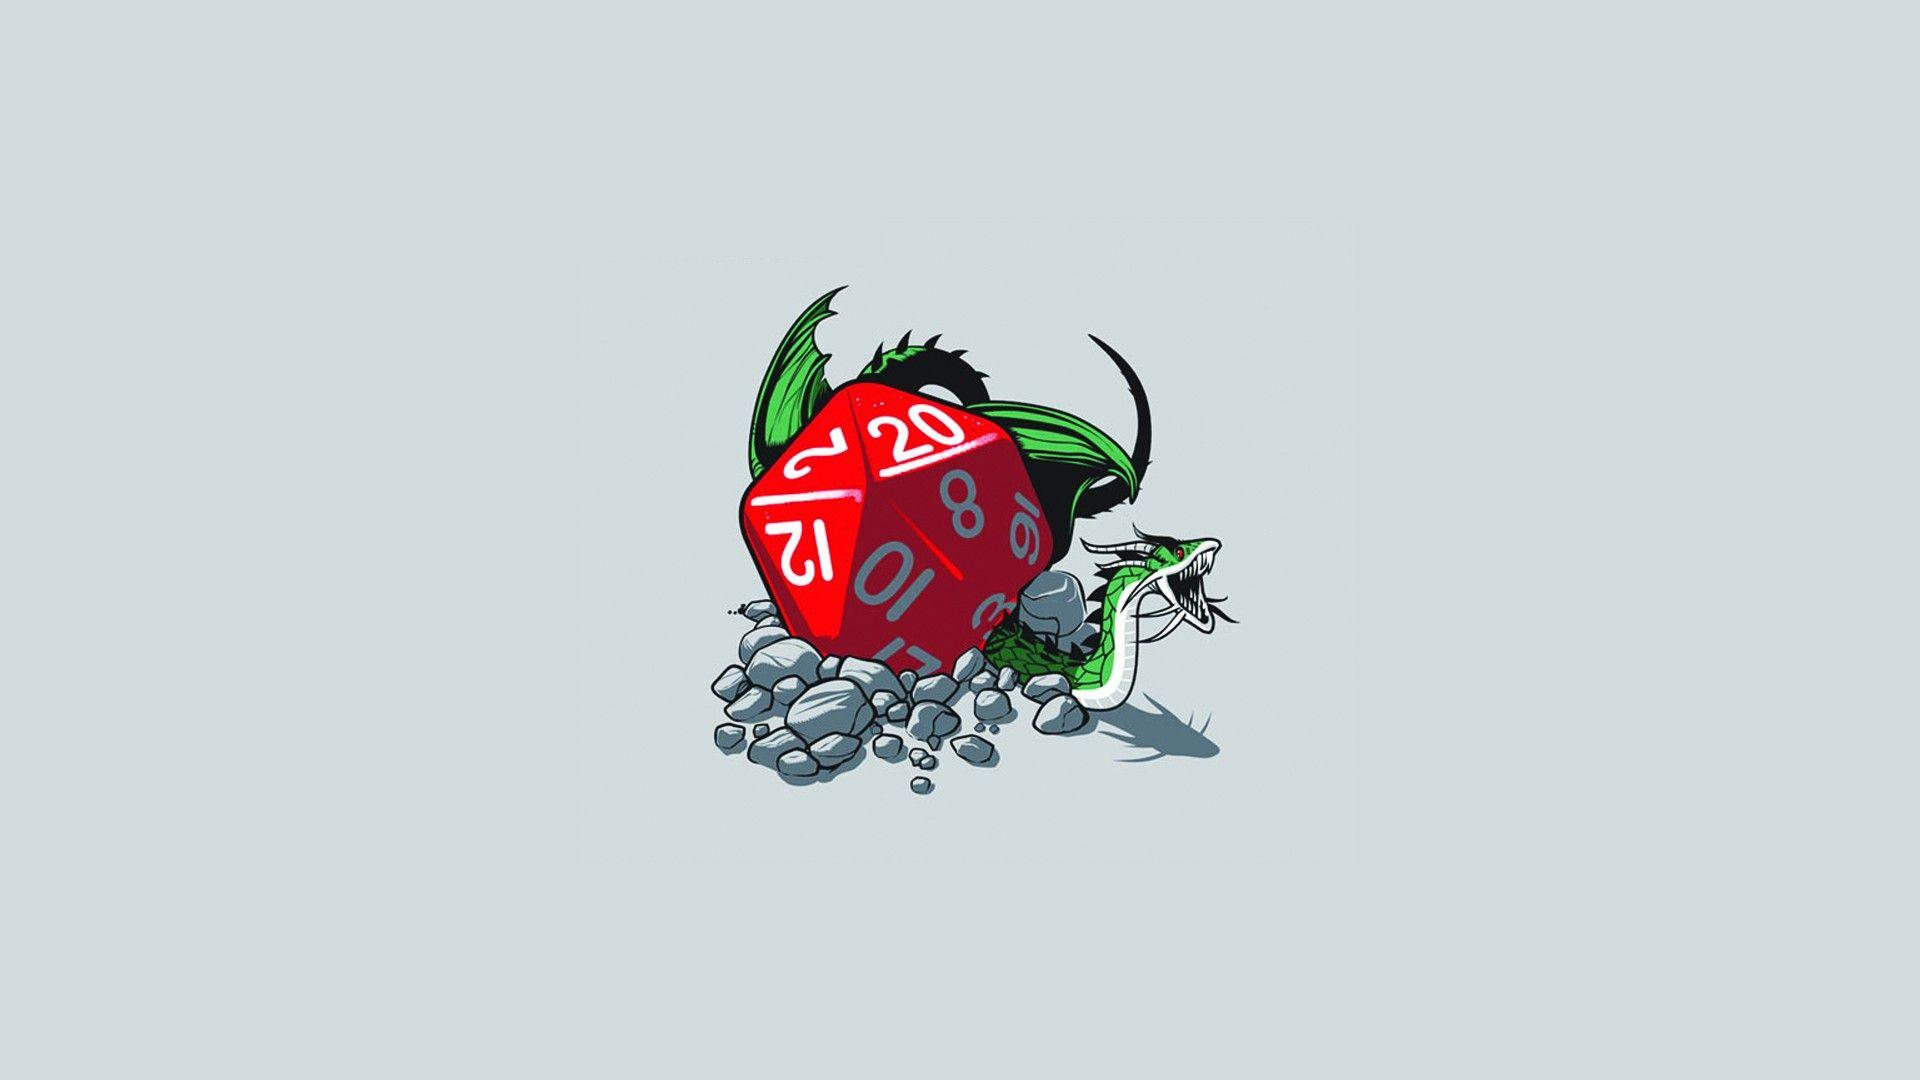 Dungeons and Dragons Dragon Dice game games fantasy wallpaper ...